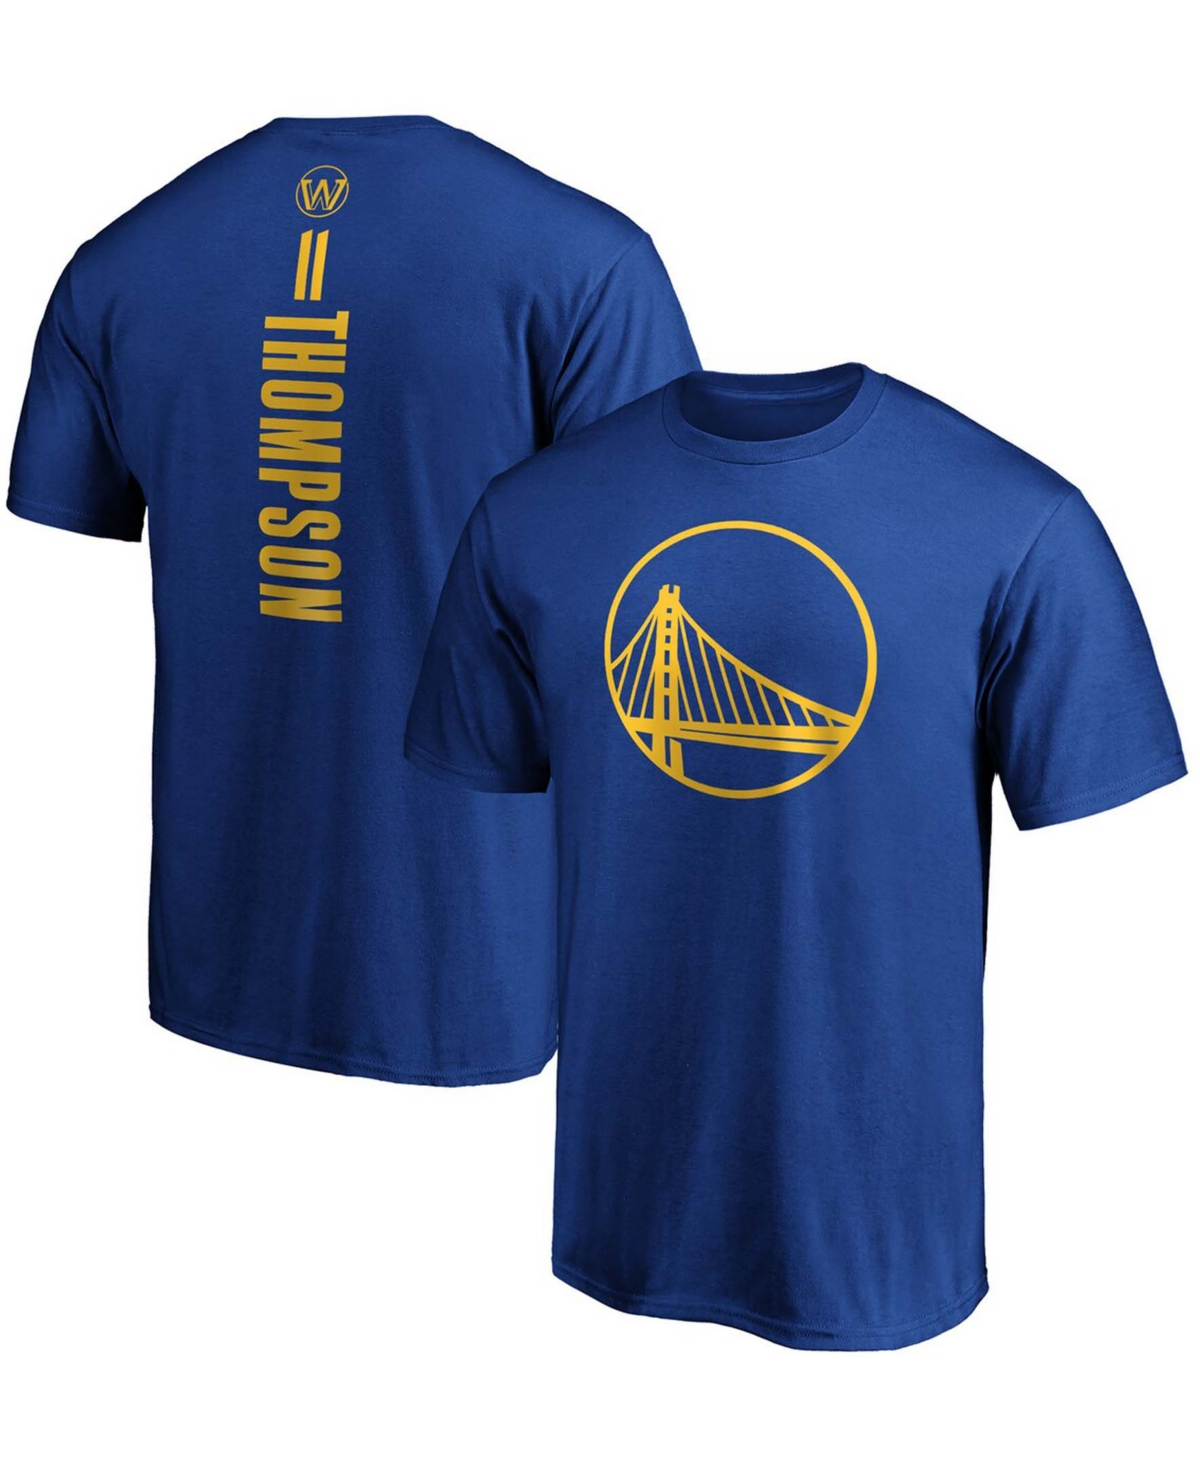 Men's Klay Thompson Royal Golden State Warriors Team Playmaker Name and Number T-shirt